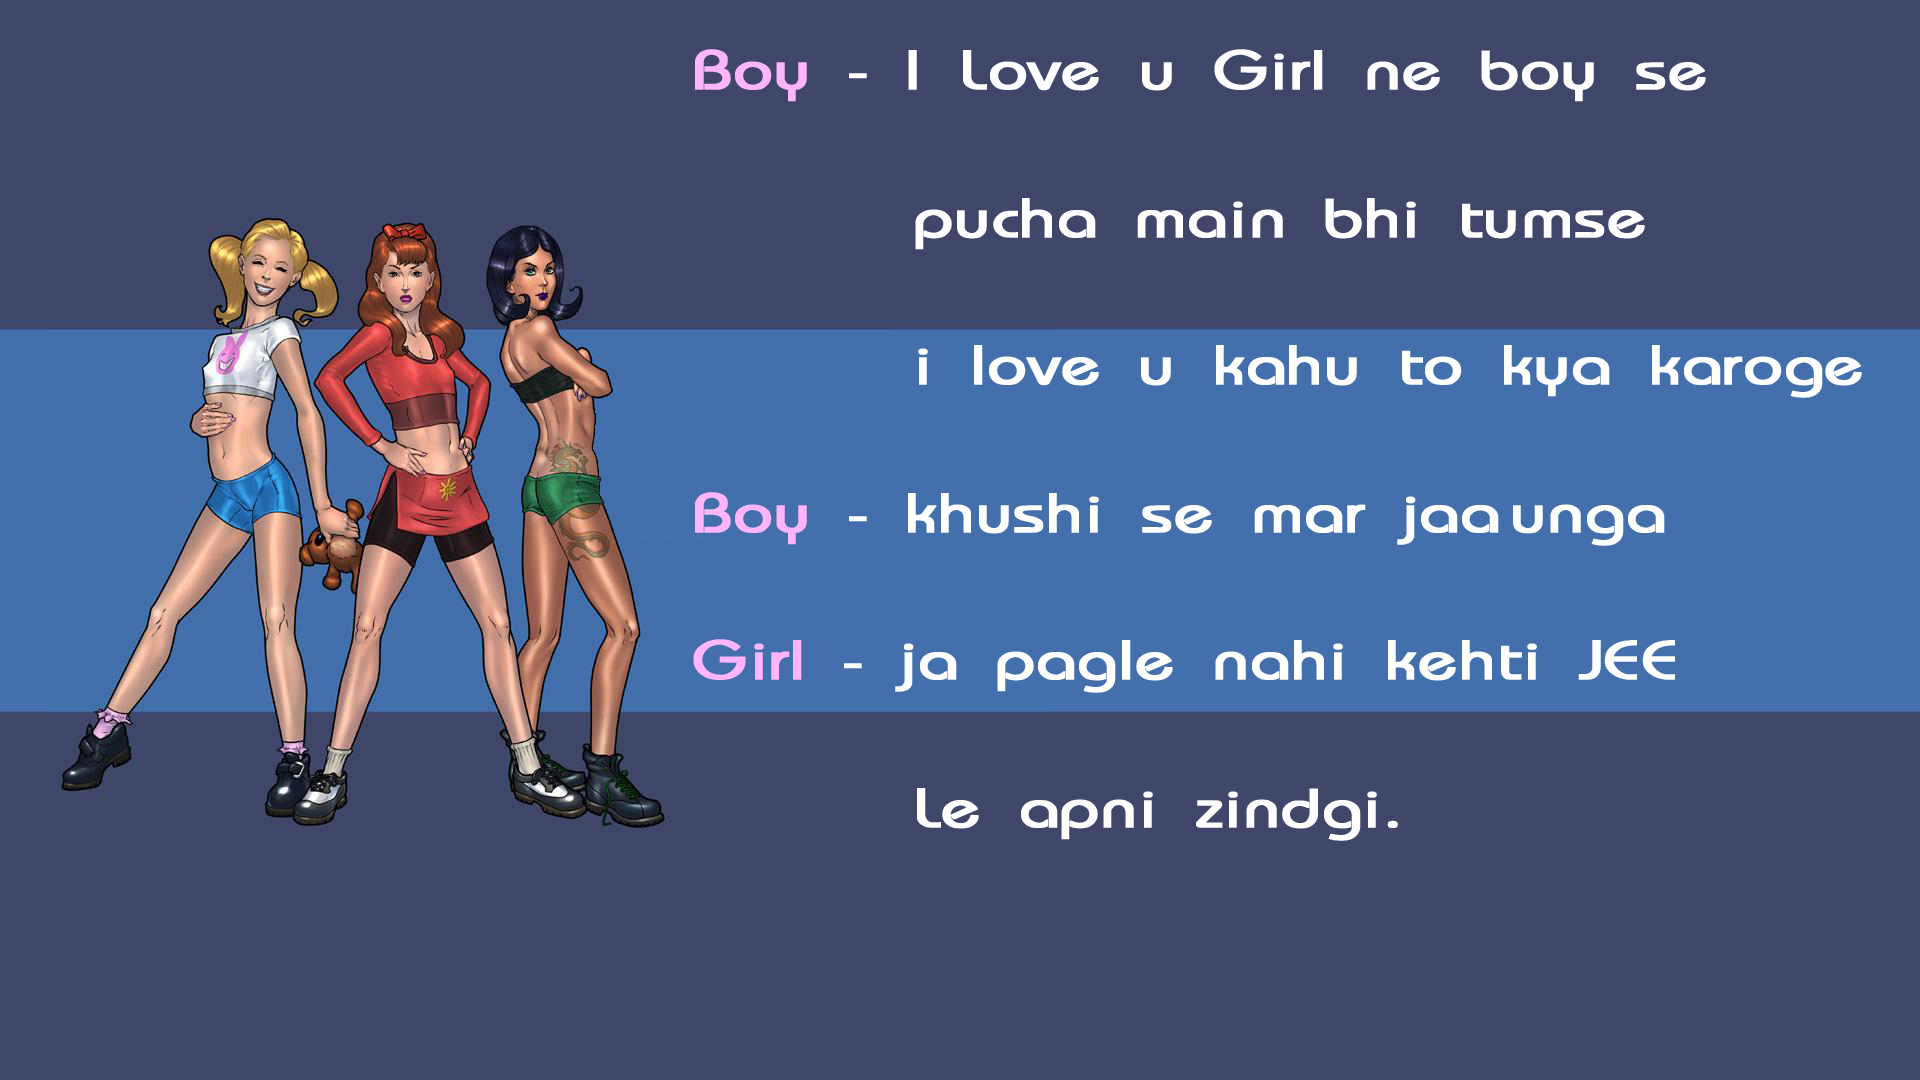 boy girl hindi funny jokes wallpaper Jokes Cards 1920x1080